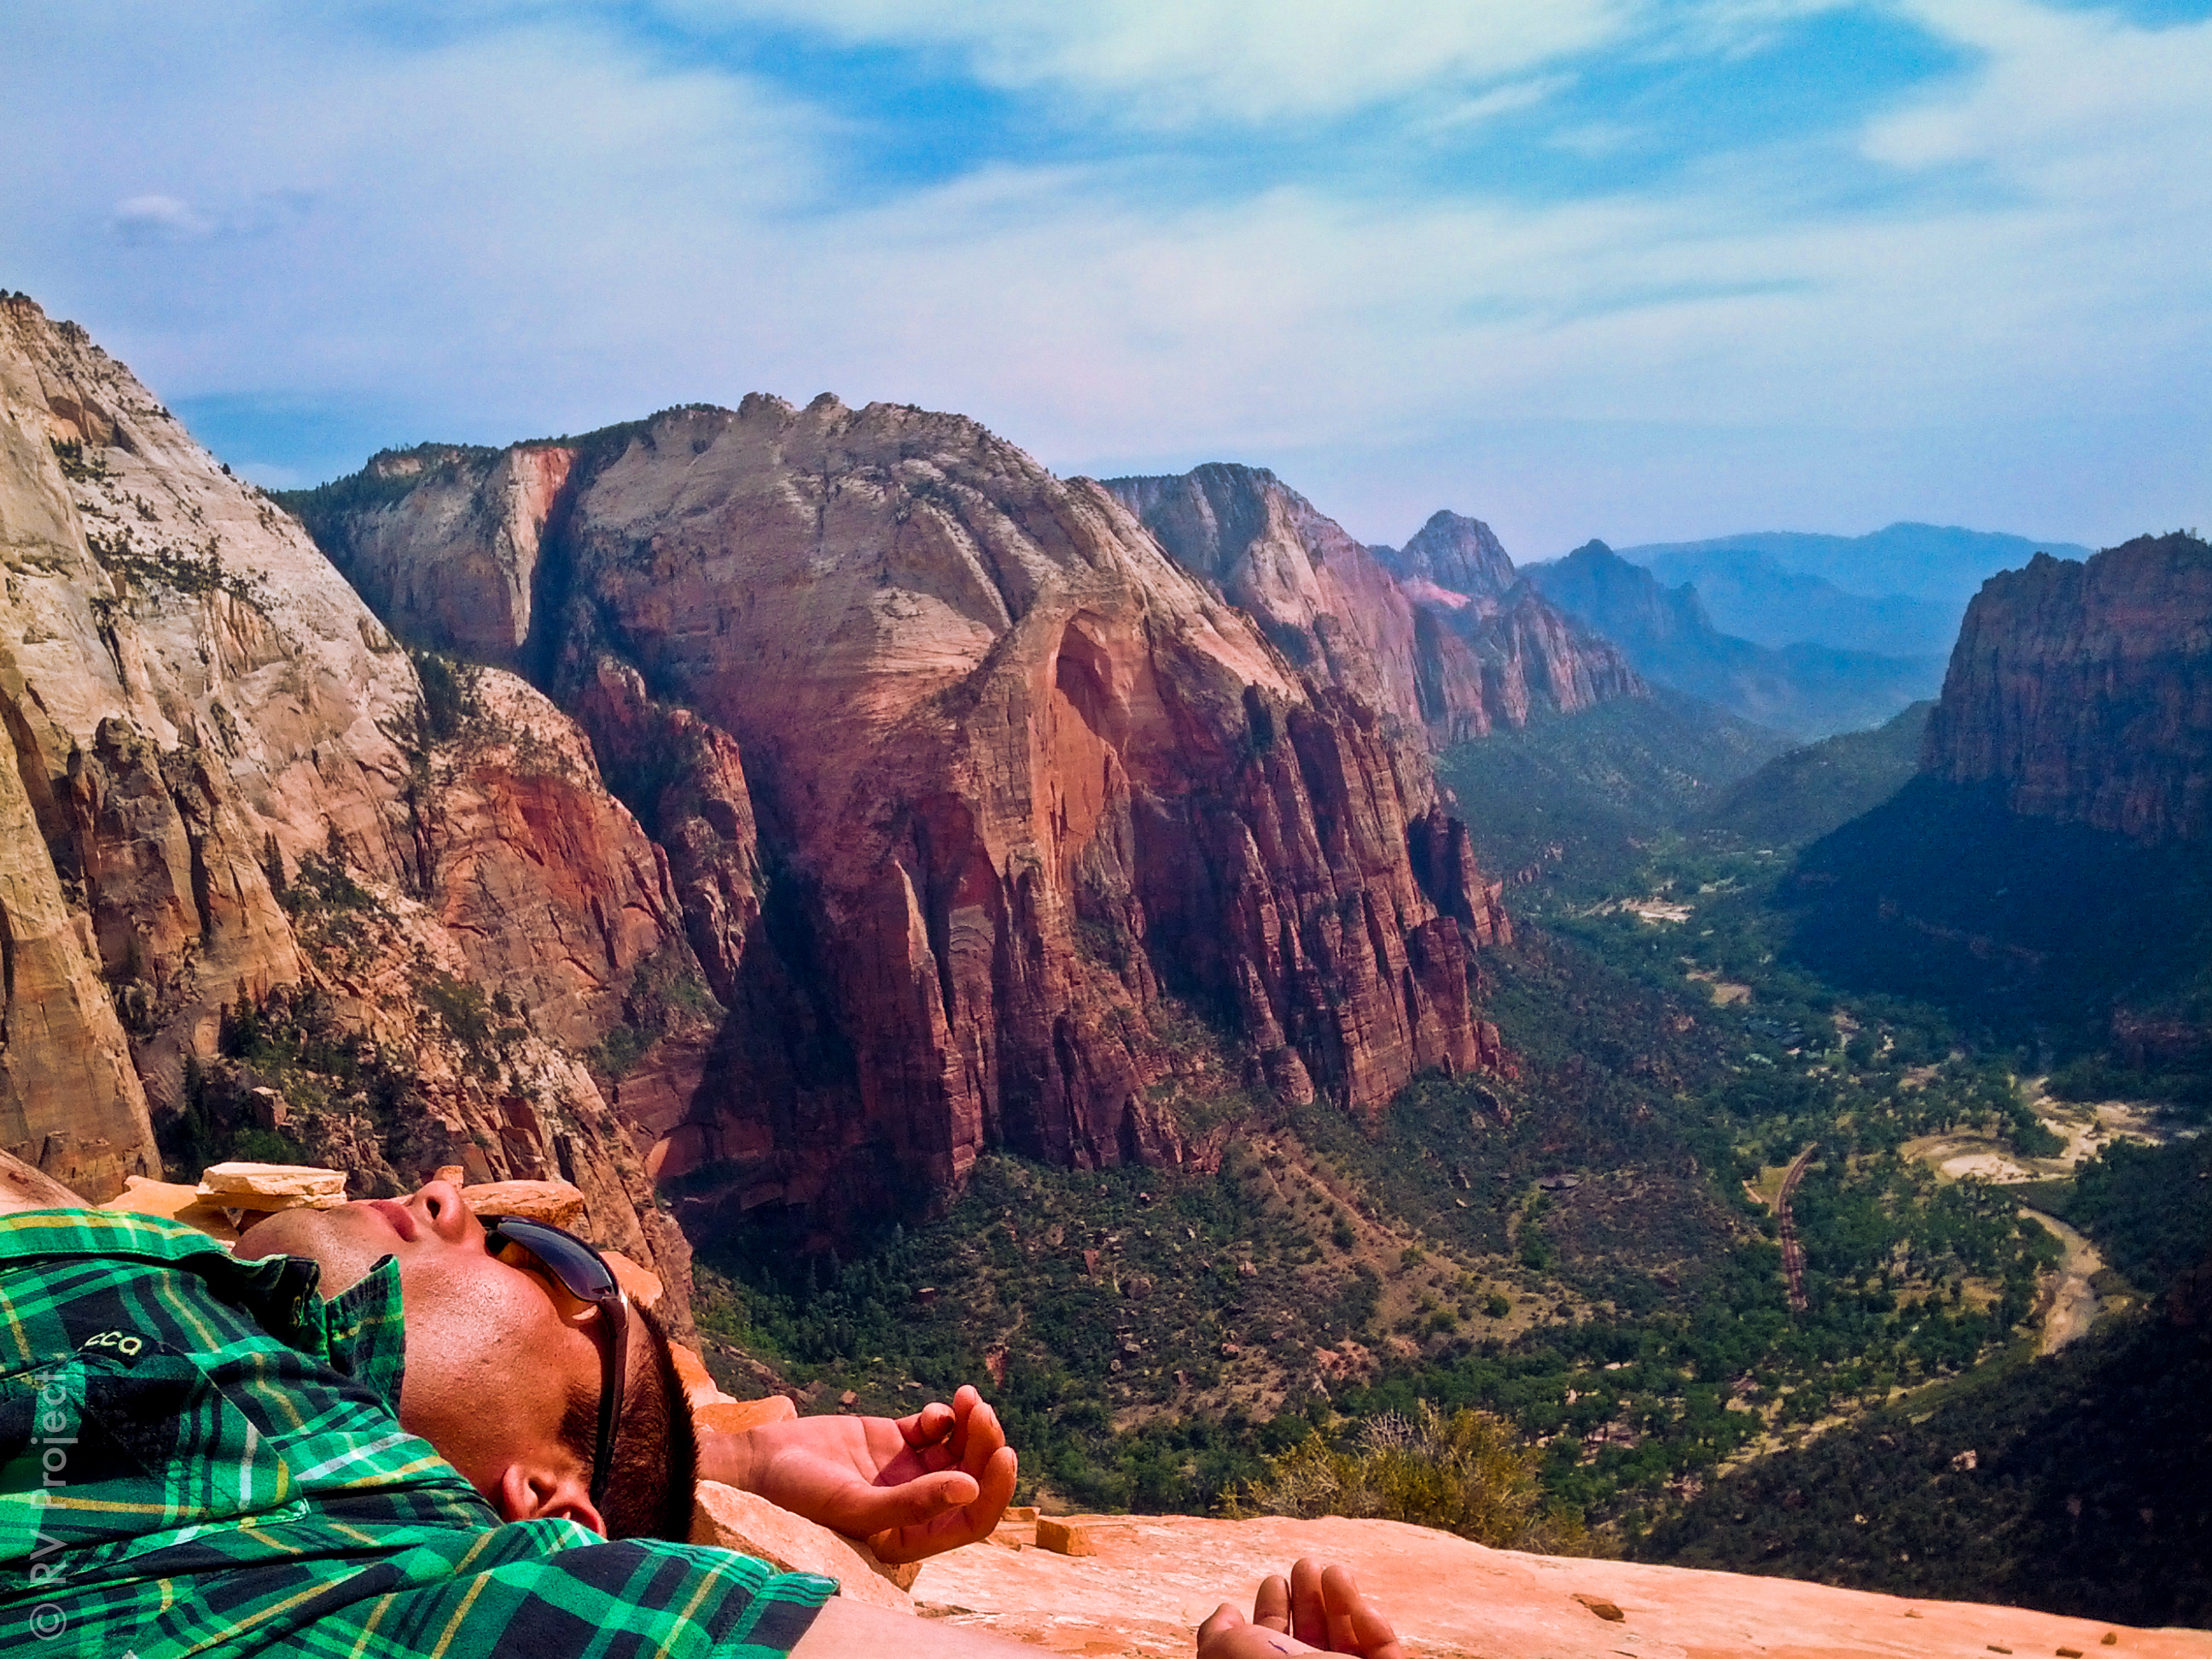 The view from the top of Angel's Landing. A great place to relax.